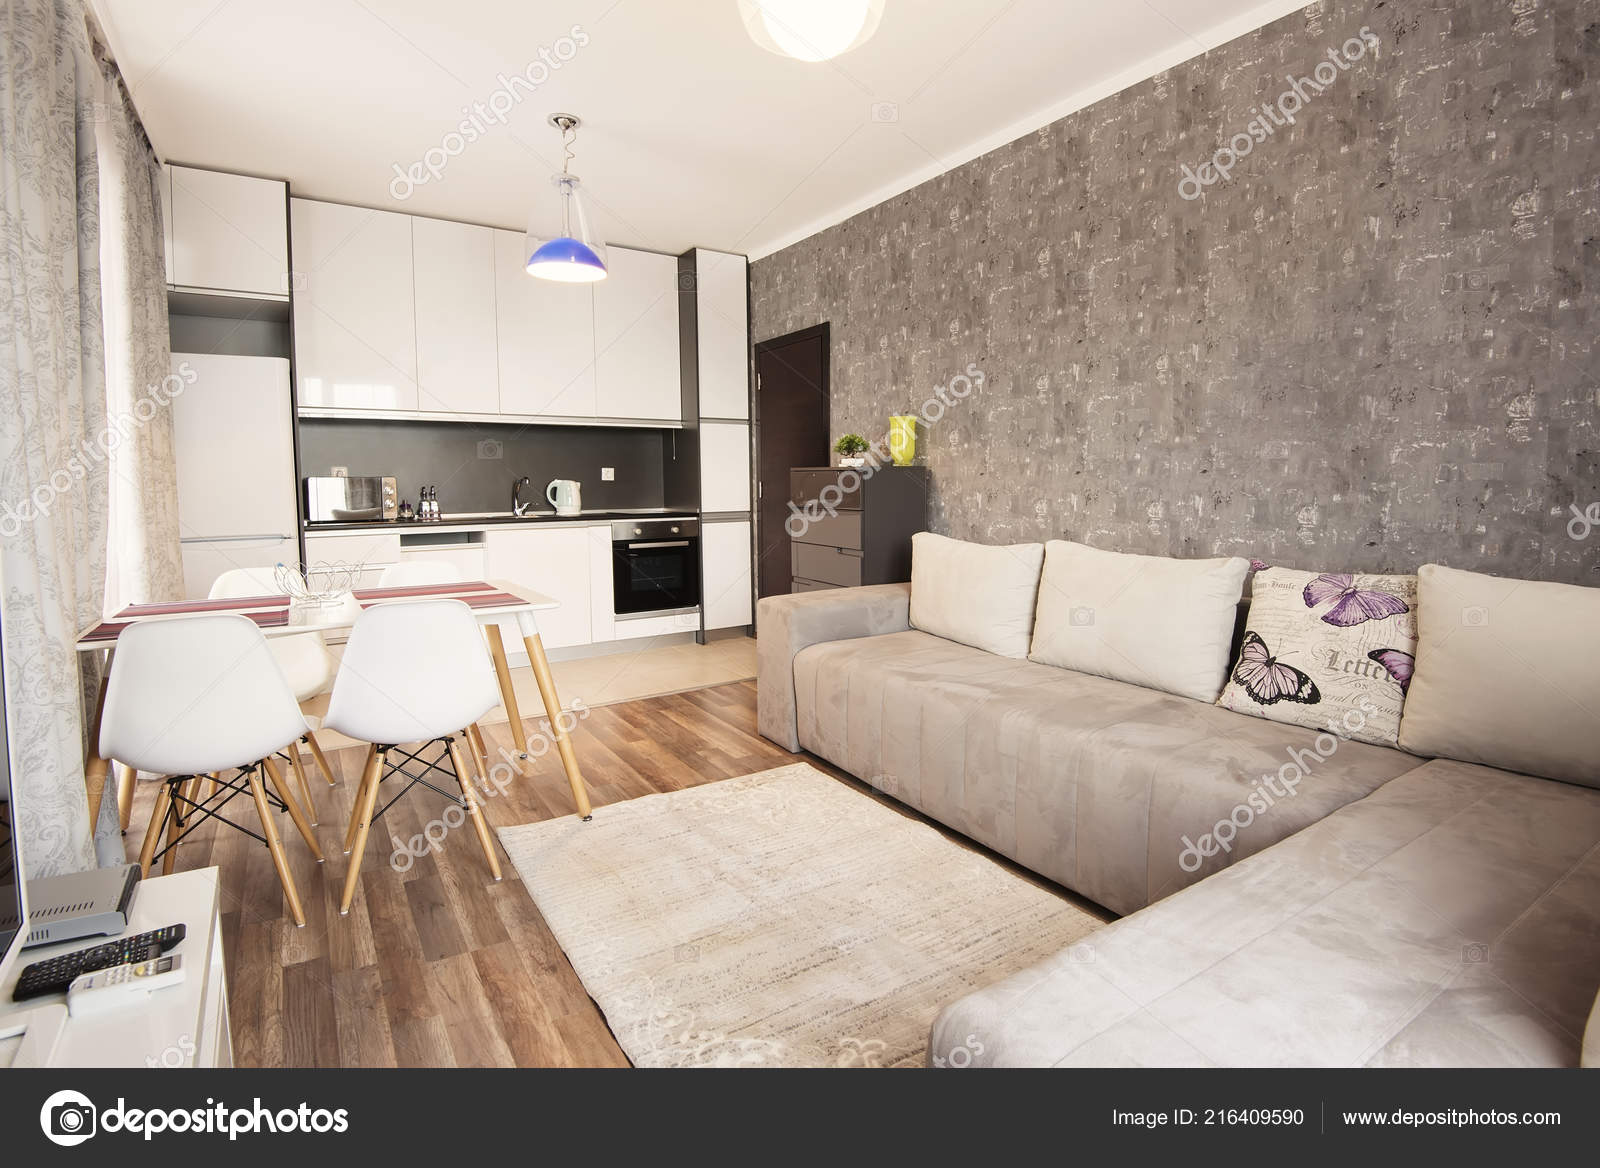 Modern Bright Cozy Living Room Interior Design Sofa Dining Table Stock Photo C Snj Abv Bg 216409590